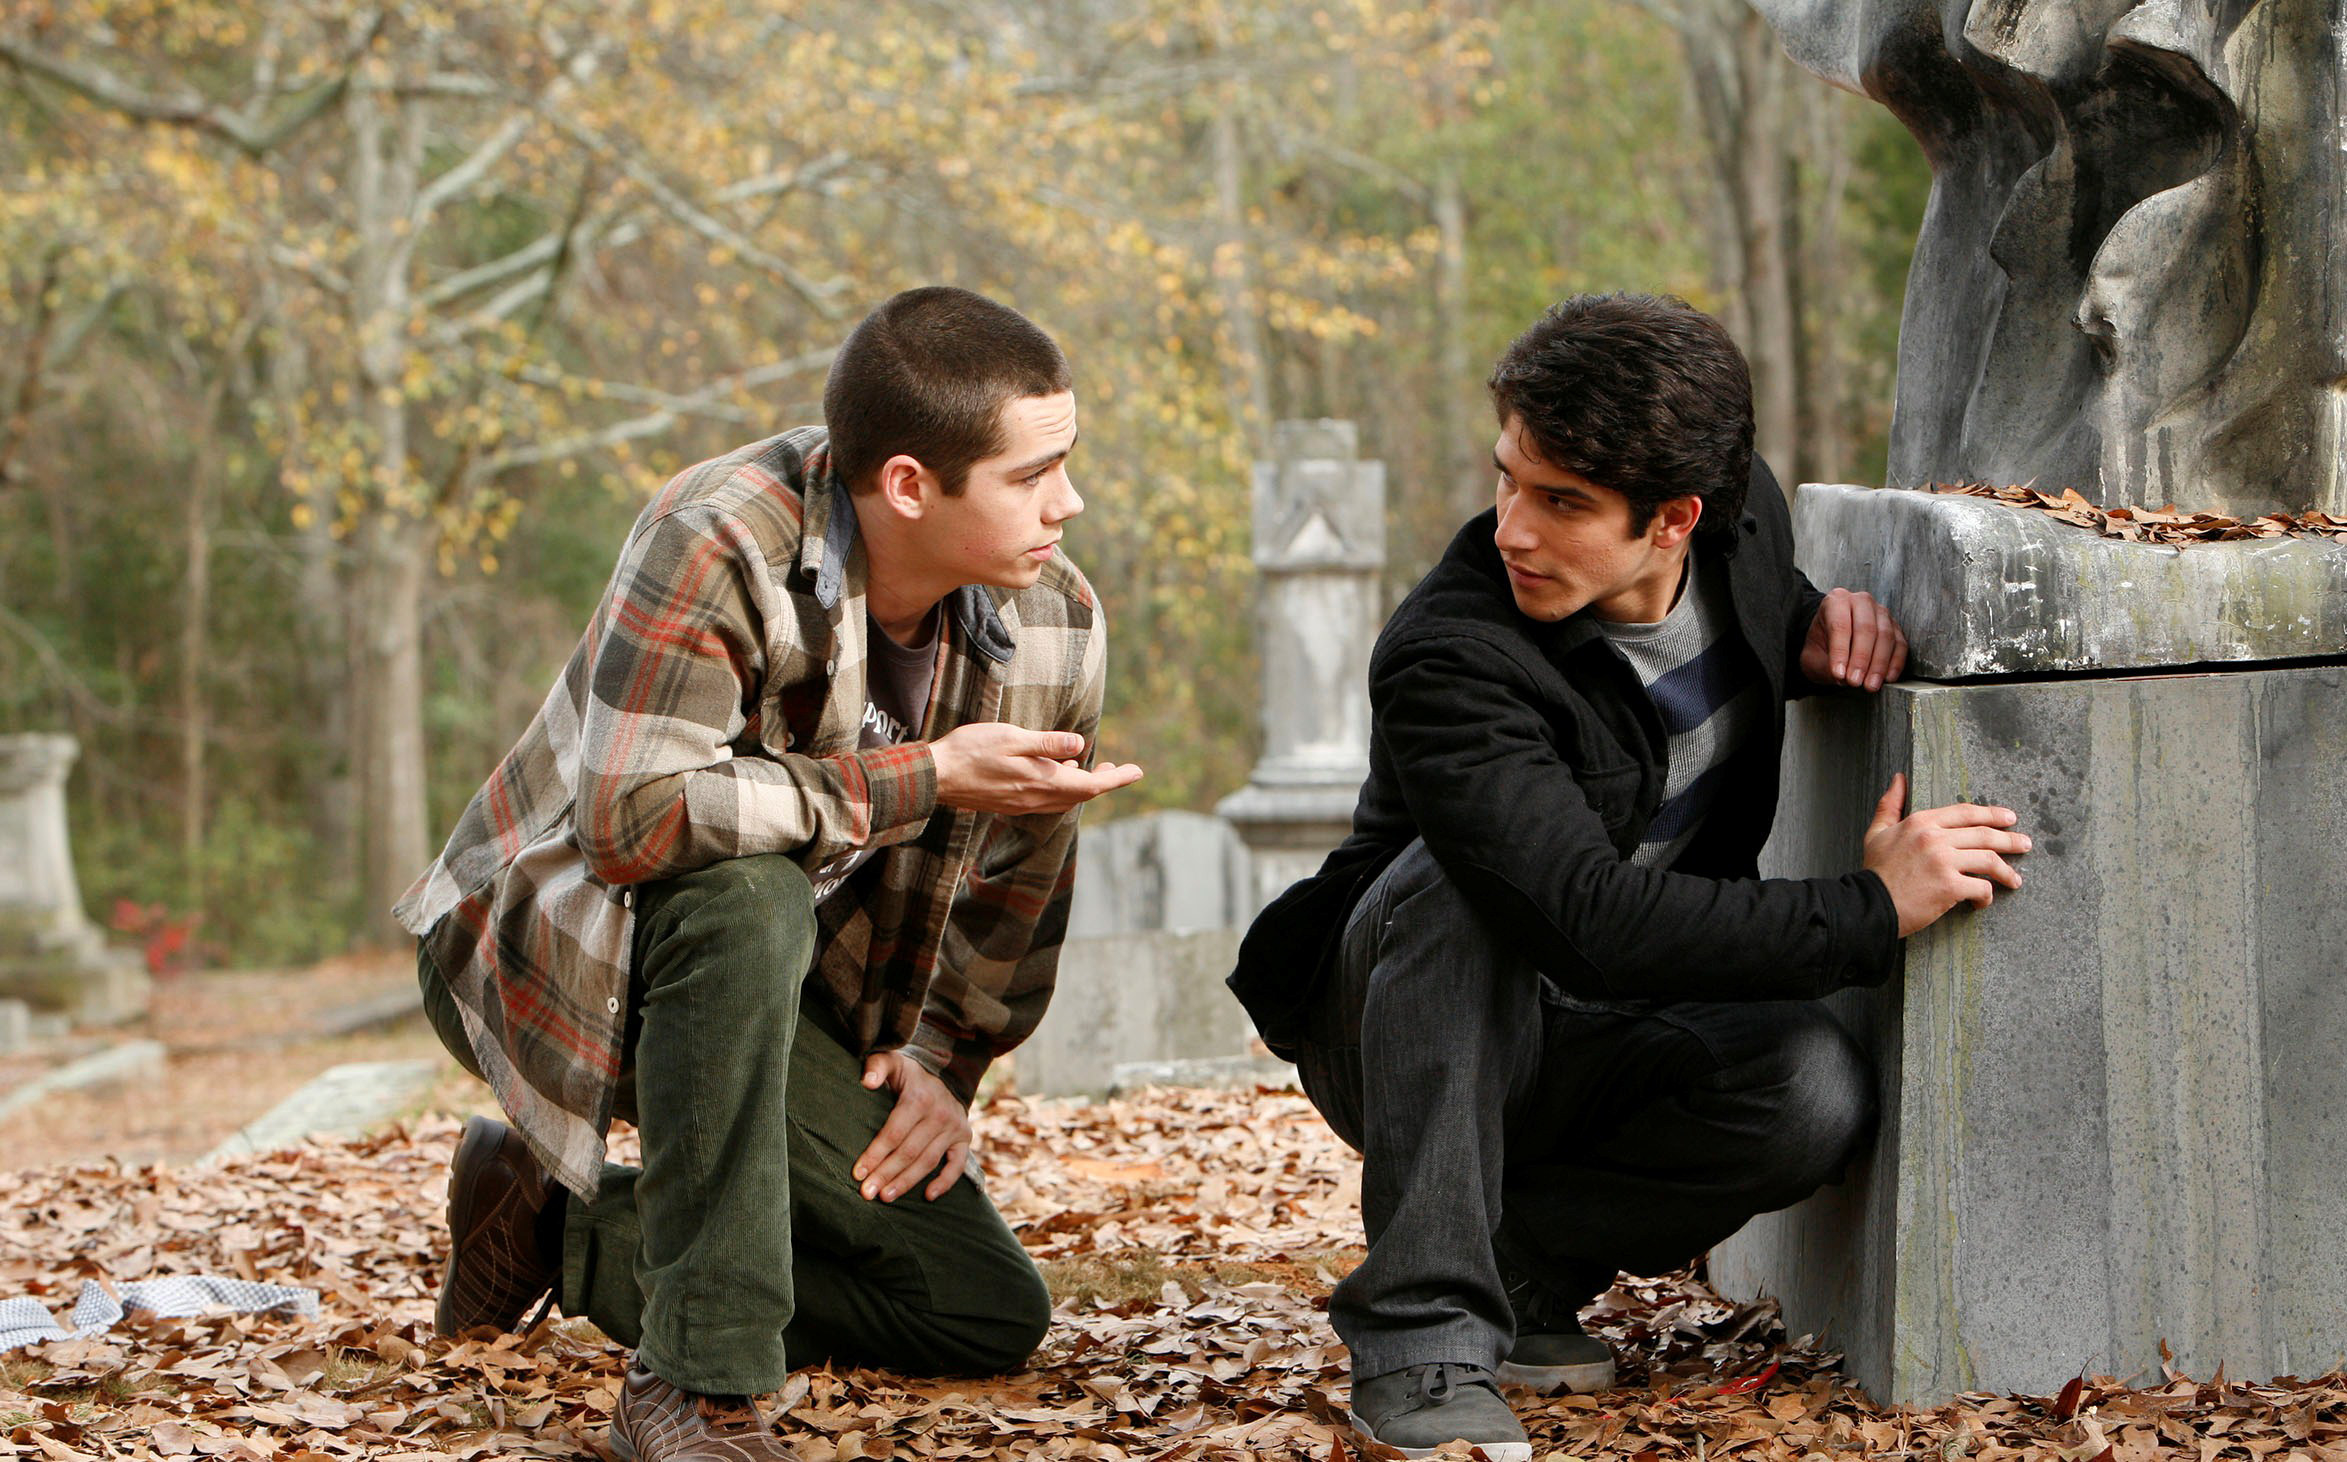 TEEN WOLF, (from left): Dylan O'Brien, Tyler Posey, (Season 2, 2012)